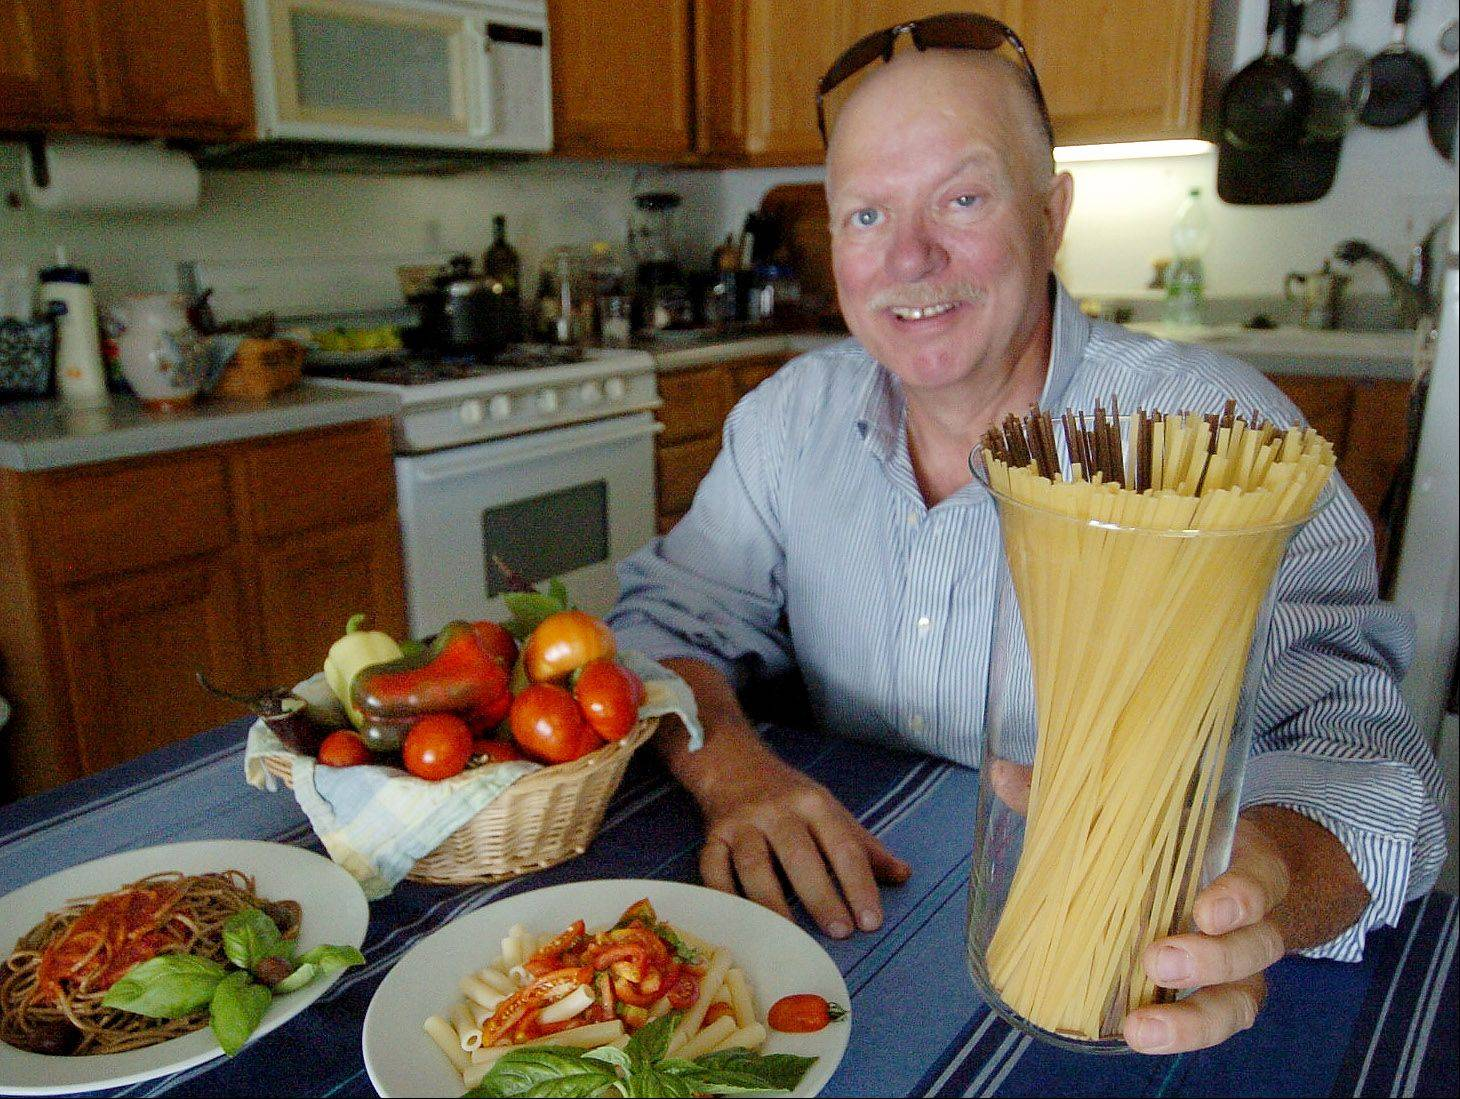 Bob Chwedyk/bchwedyk@dailyherald.com Cook of the Week challenge contestant Antonio DePau with his favorite ingredient pasta.